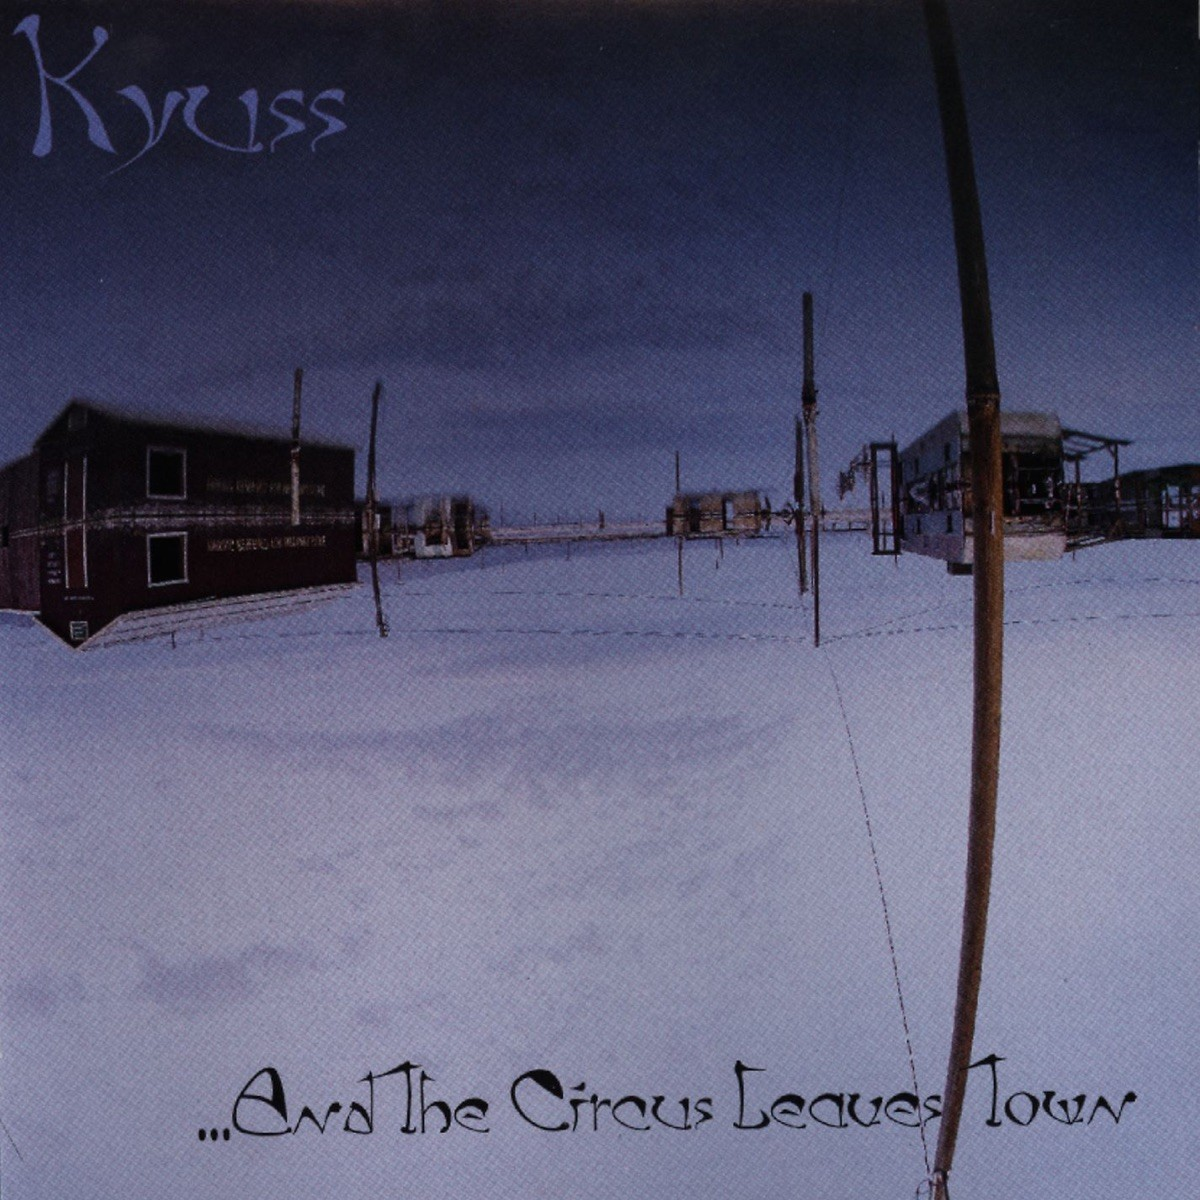 Kyuss - ..And the Circus Leaves Town VINYL - EA61811B